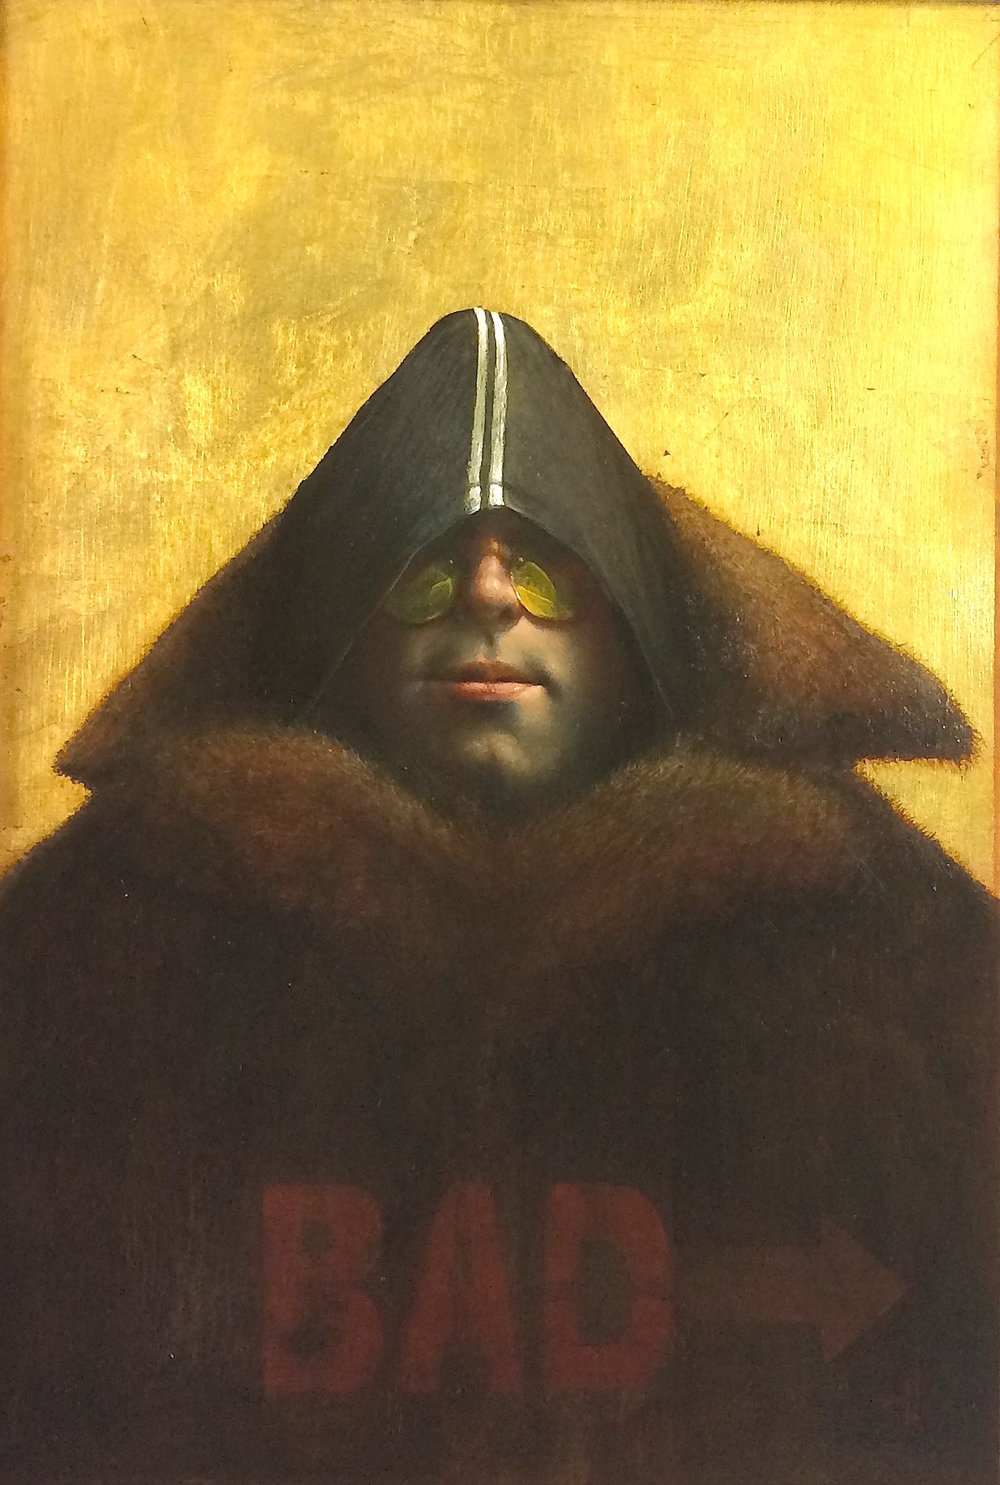 Title: Bad Boy  Size: 45 x 33.5 cm  Medium: Oil on panel  Price: £6,000